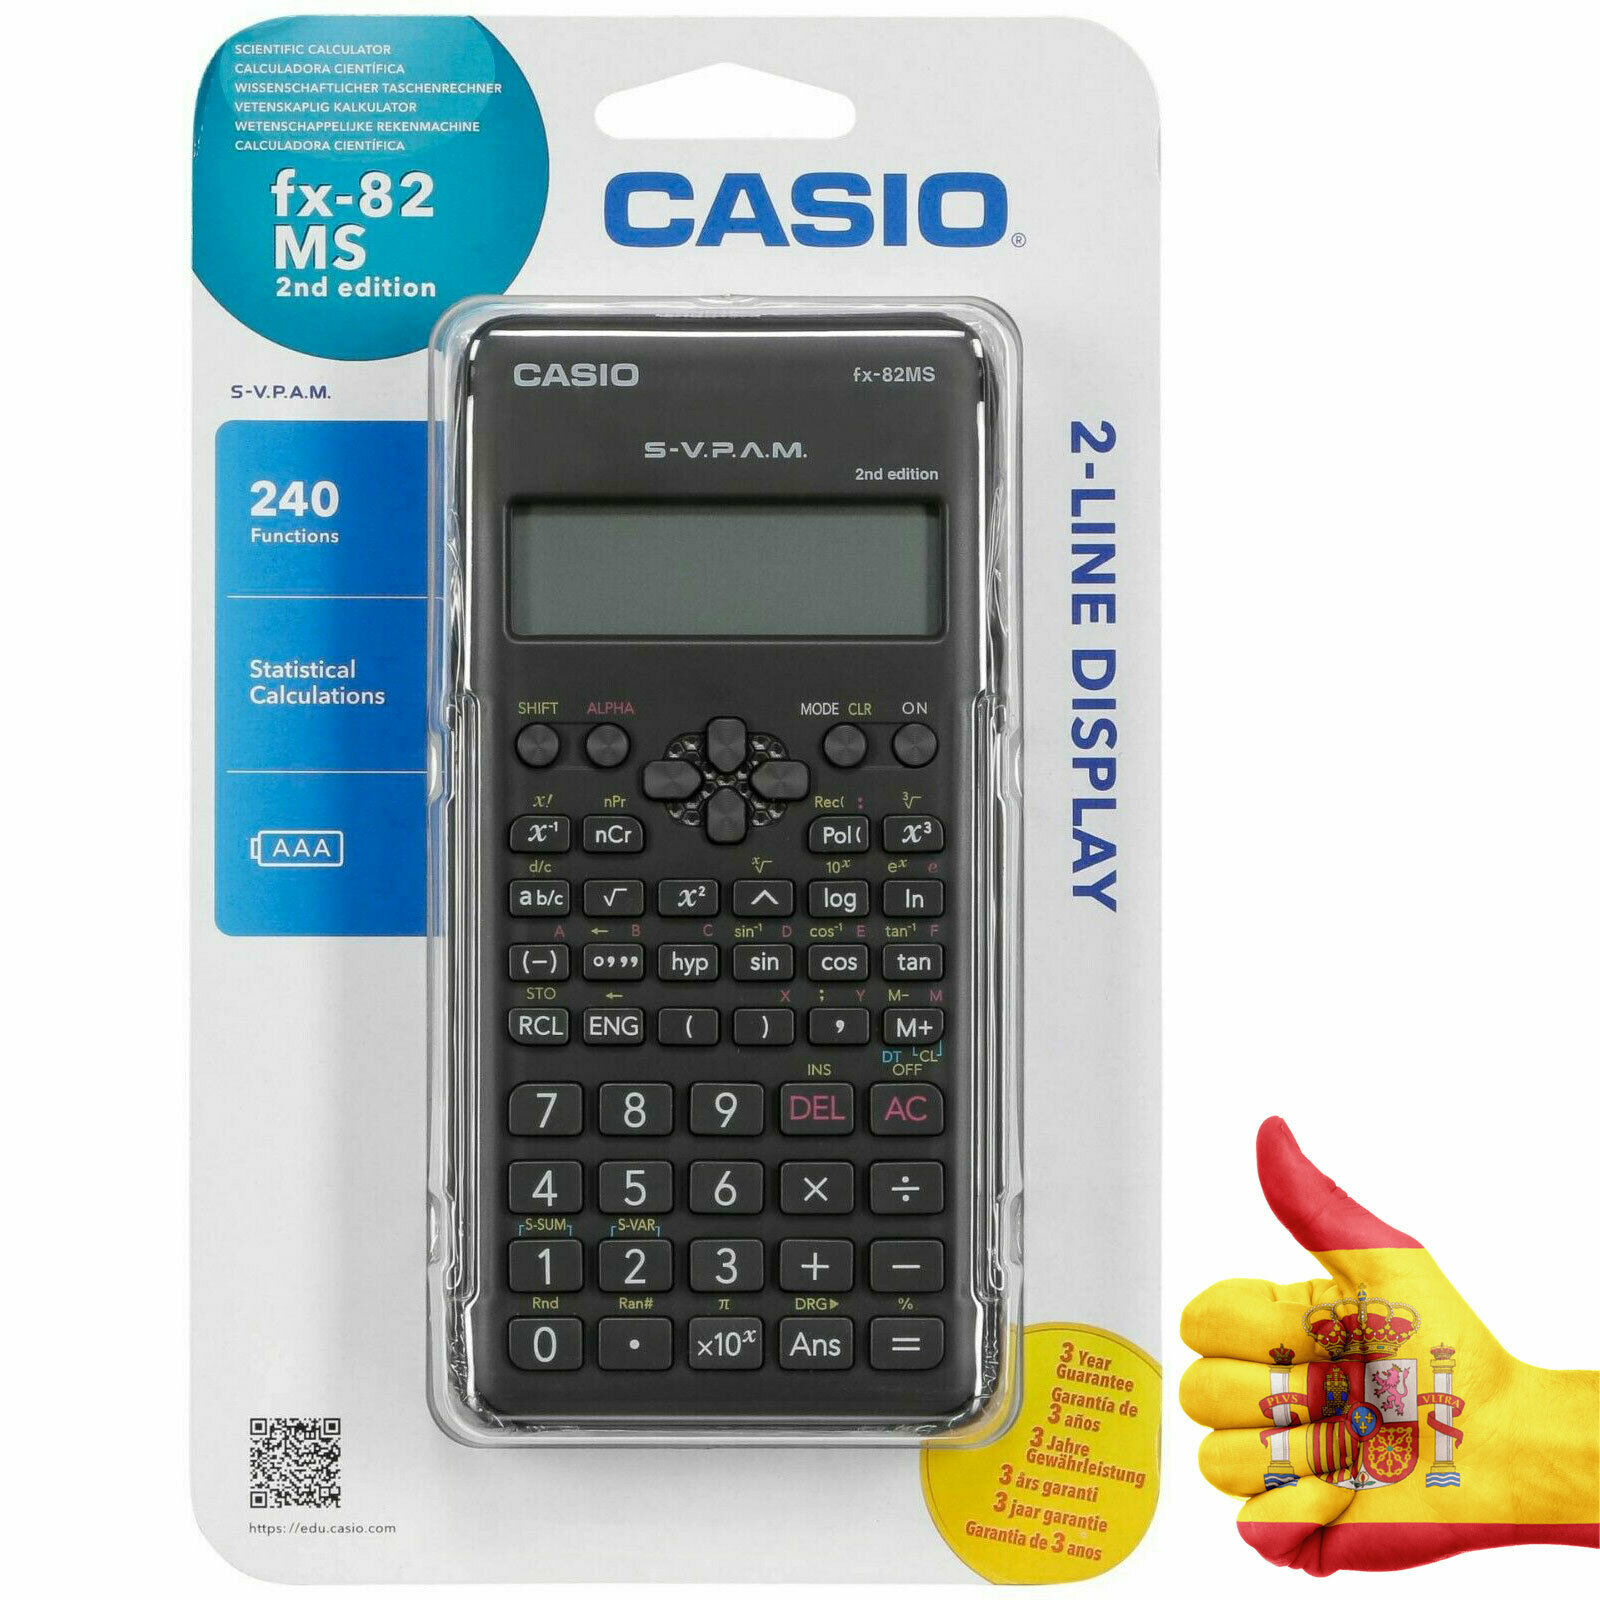 CASIO Calculator FX-82MS2 Middle School's Student Chemistry Math SAT/AP Exam Scientific Calculator Children Science